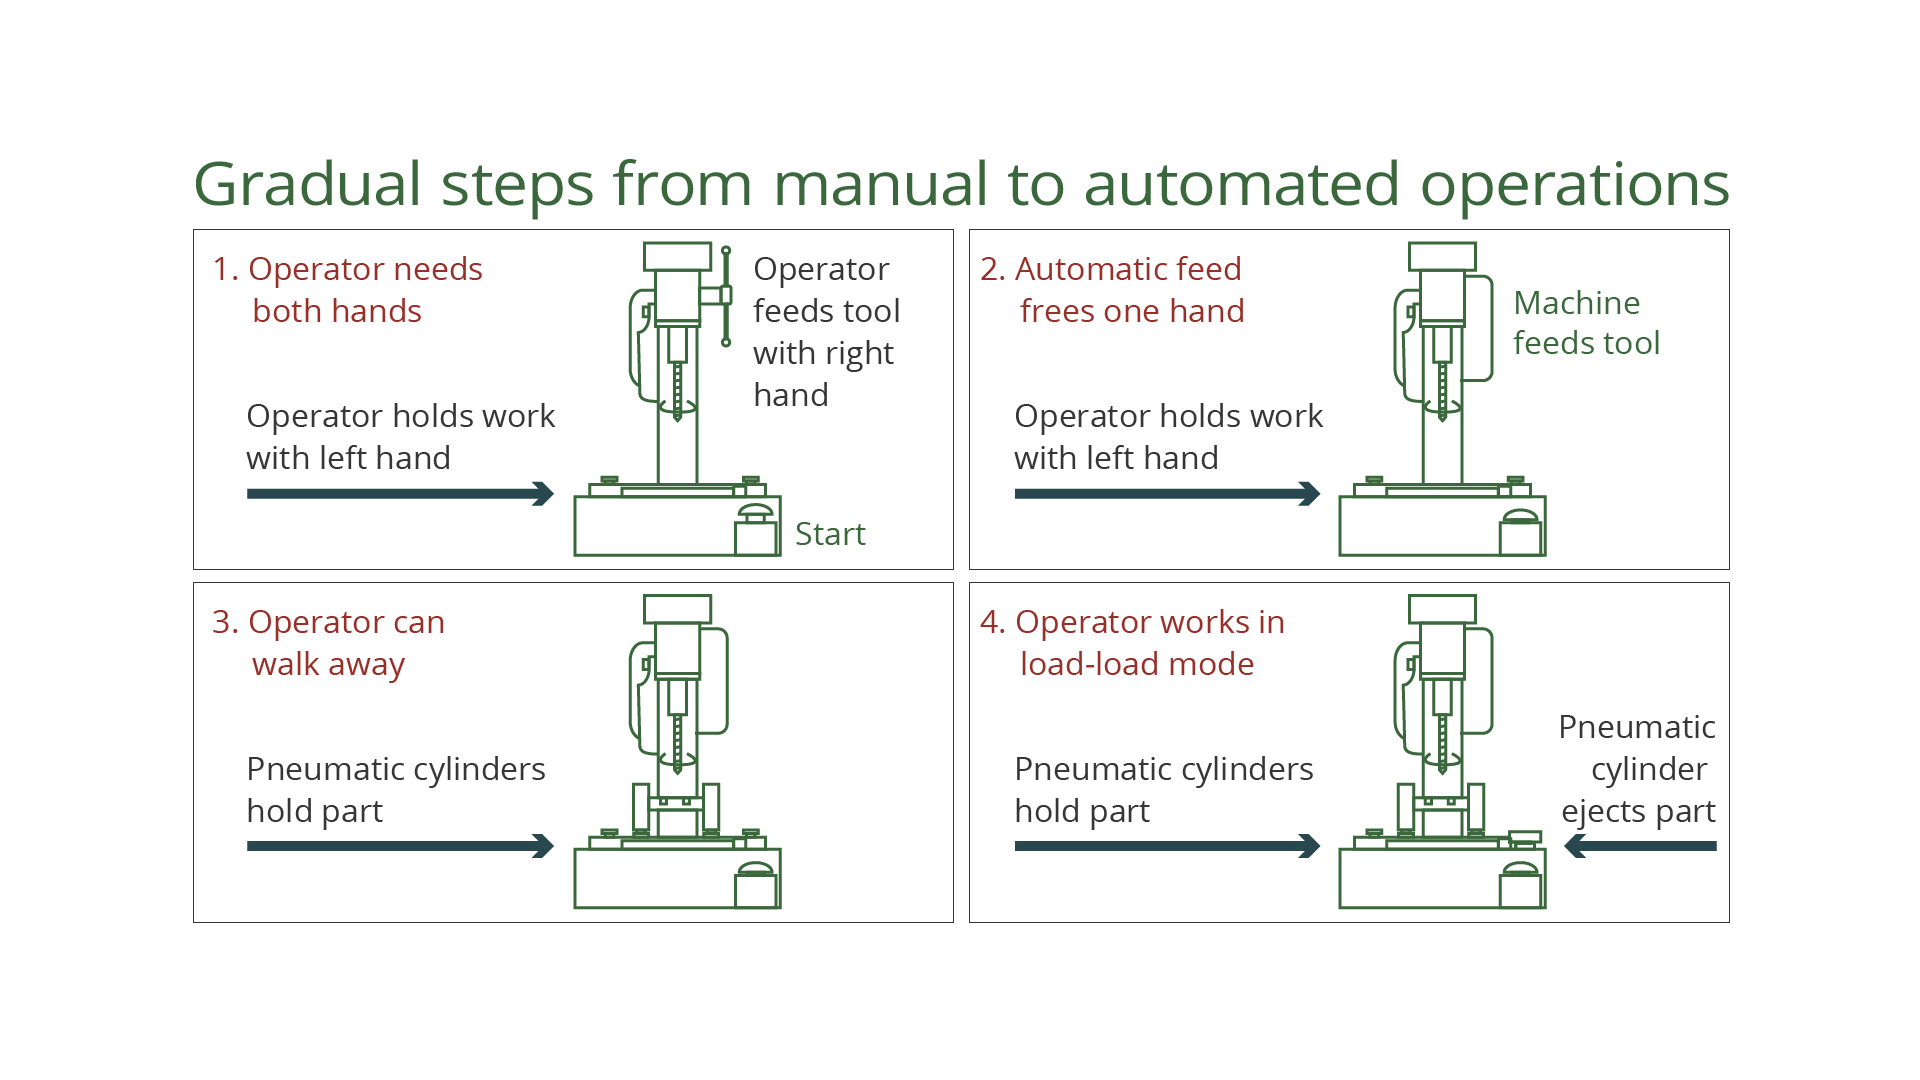 Automated operations